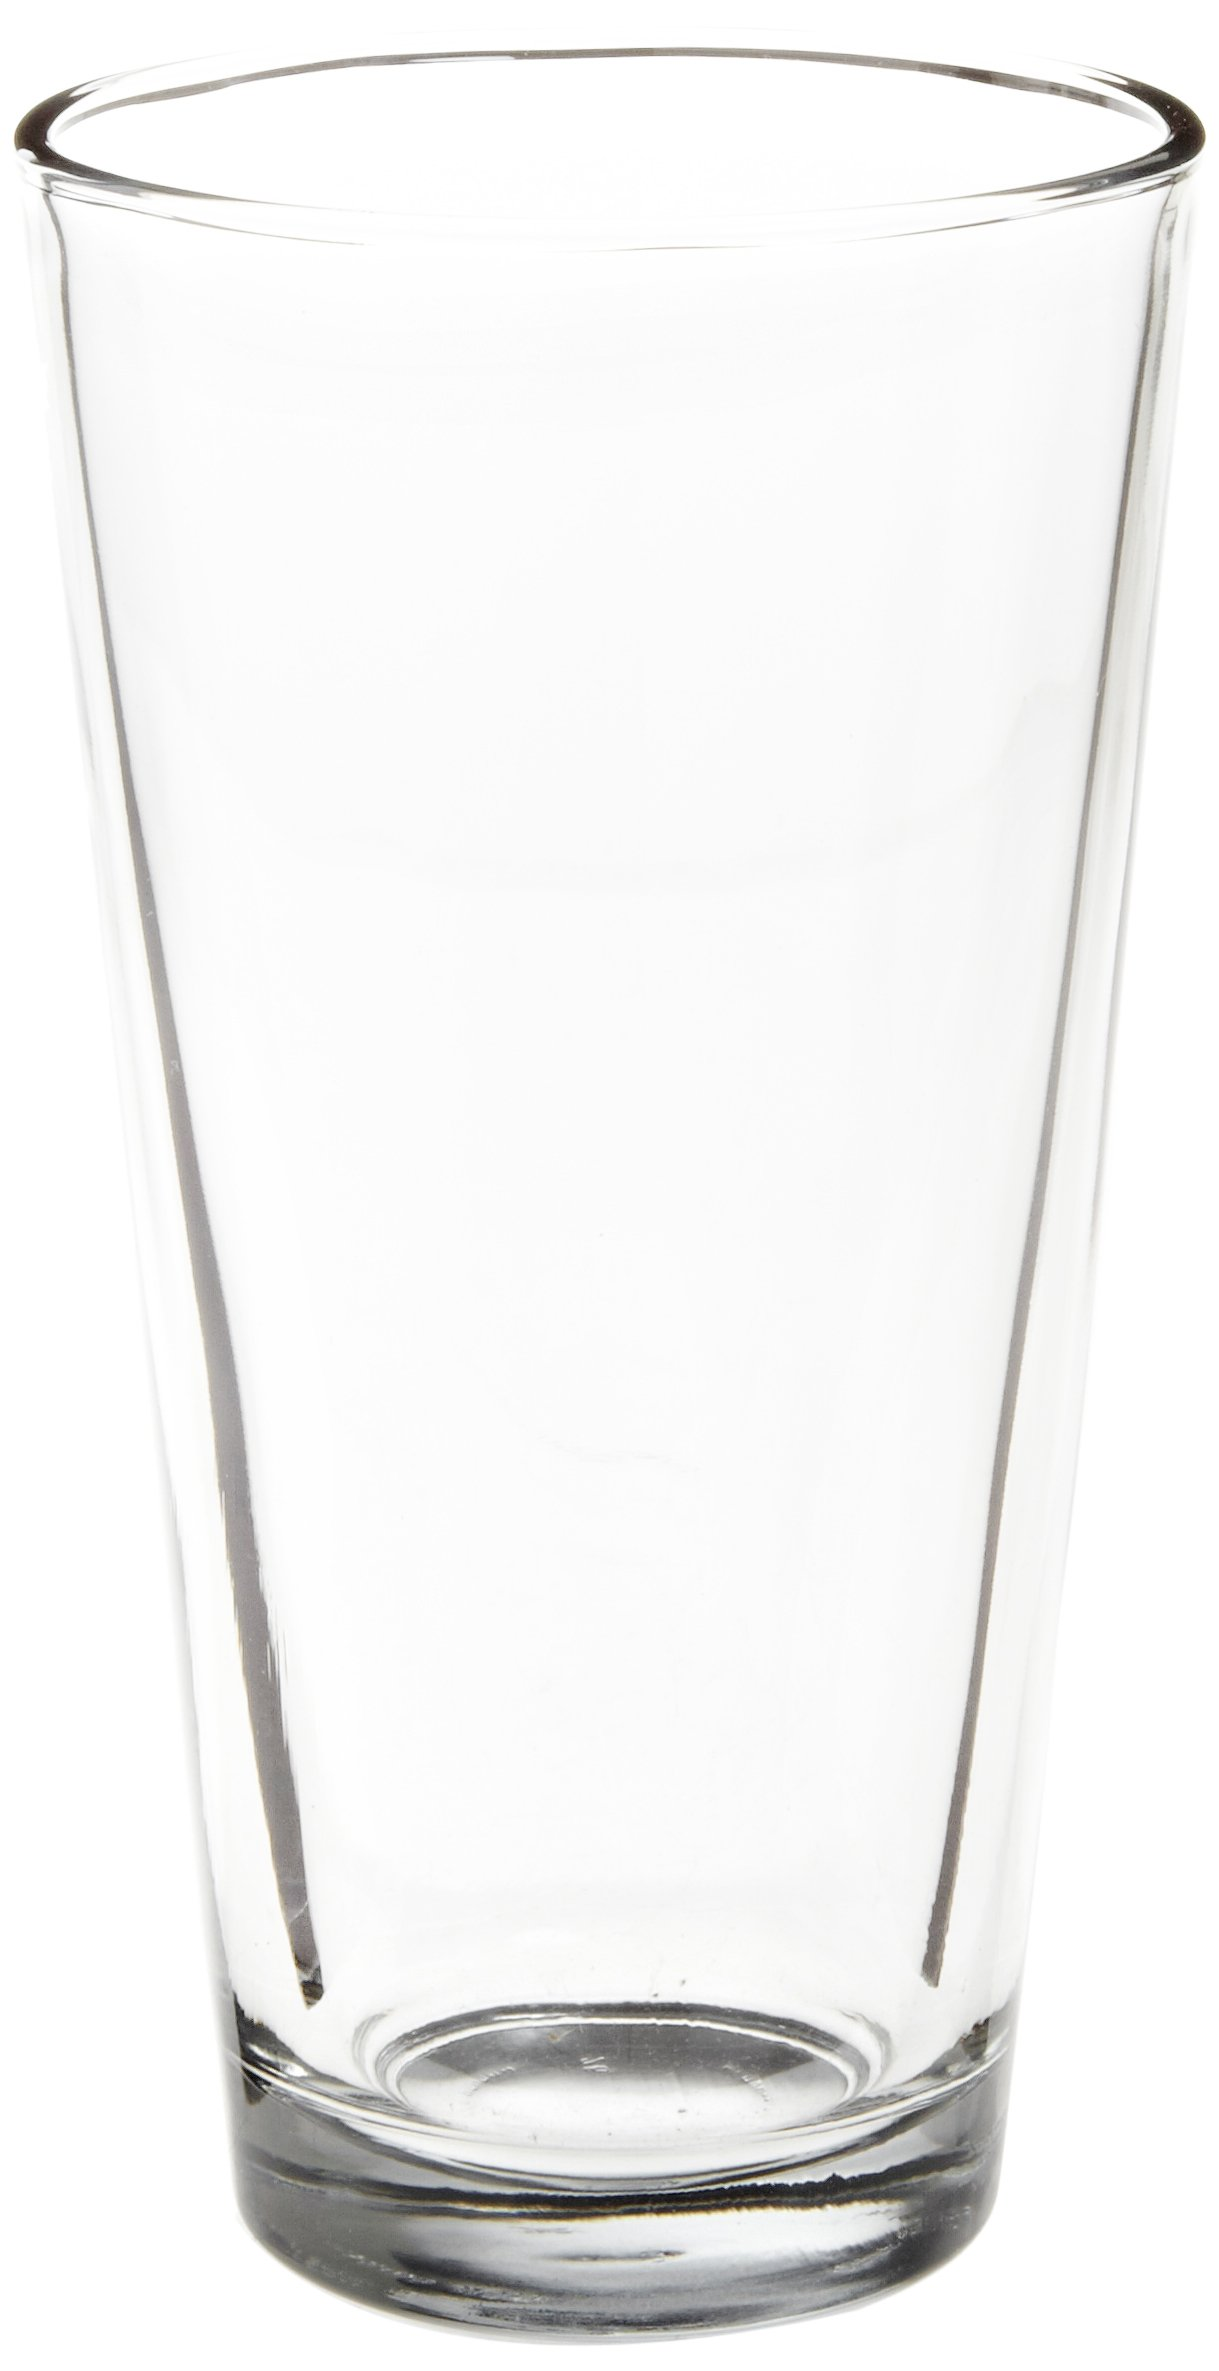 Anchor Hocking 77420 3-5/8 Inch Diameter x 6-7/8 Inch Height, 20-Ounce Mixing Glass (Case of 24)